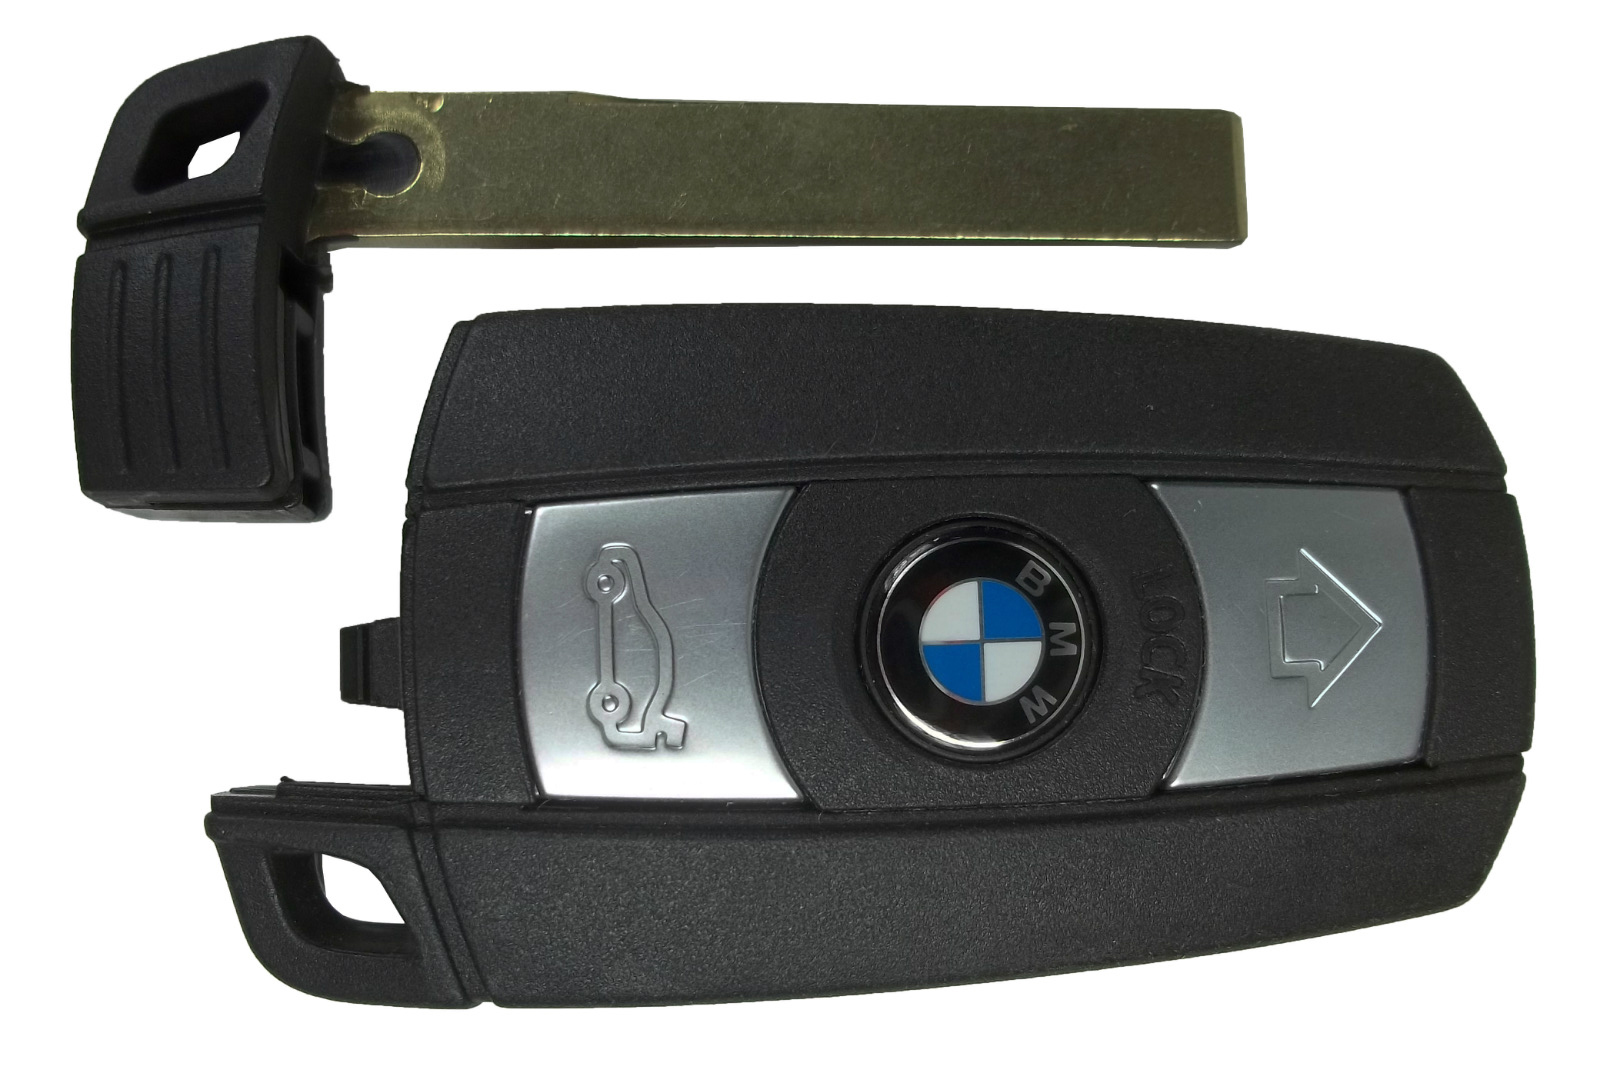 BMW emergency key